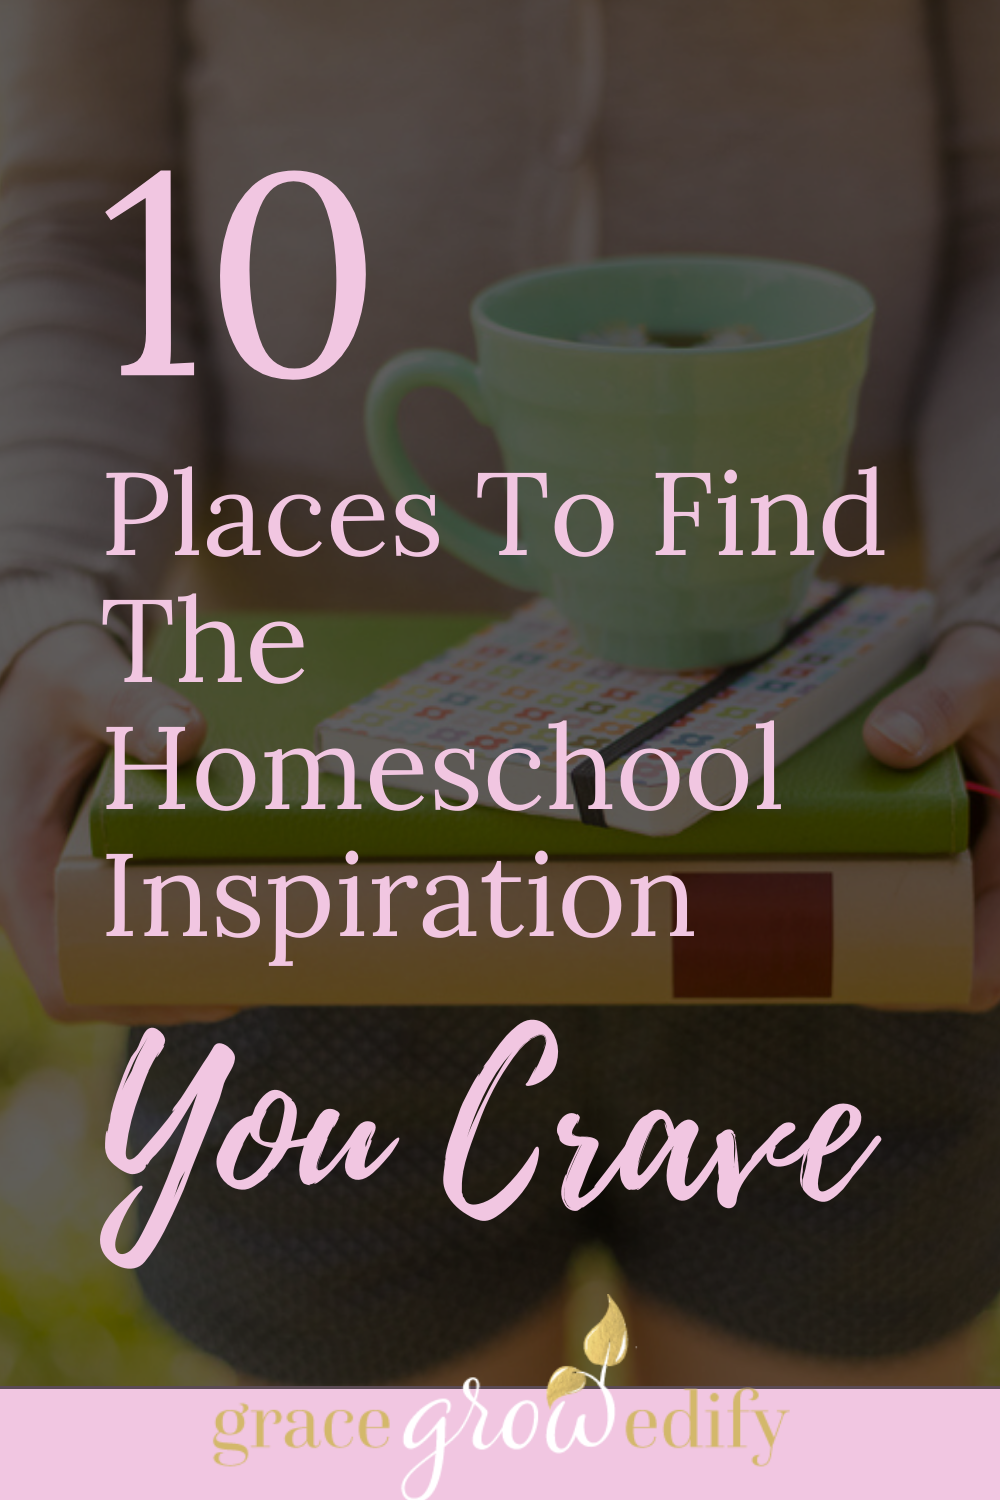 Homeschool Inspiration